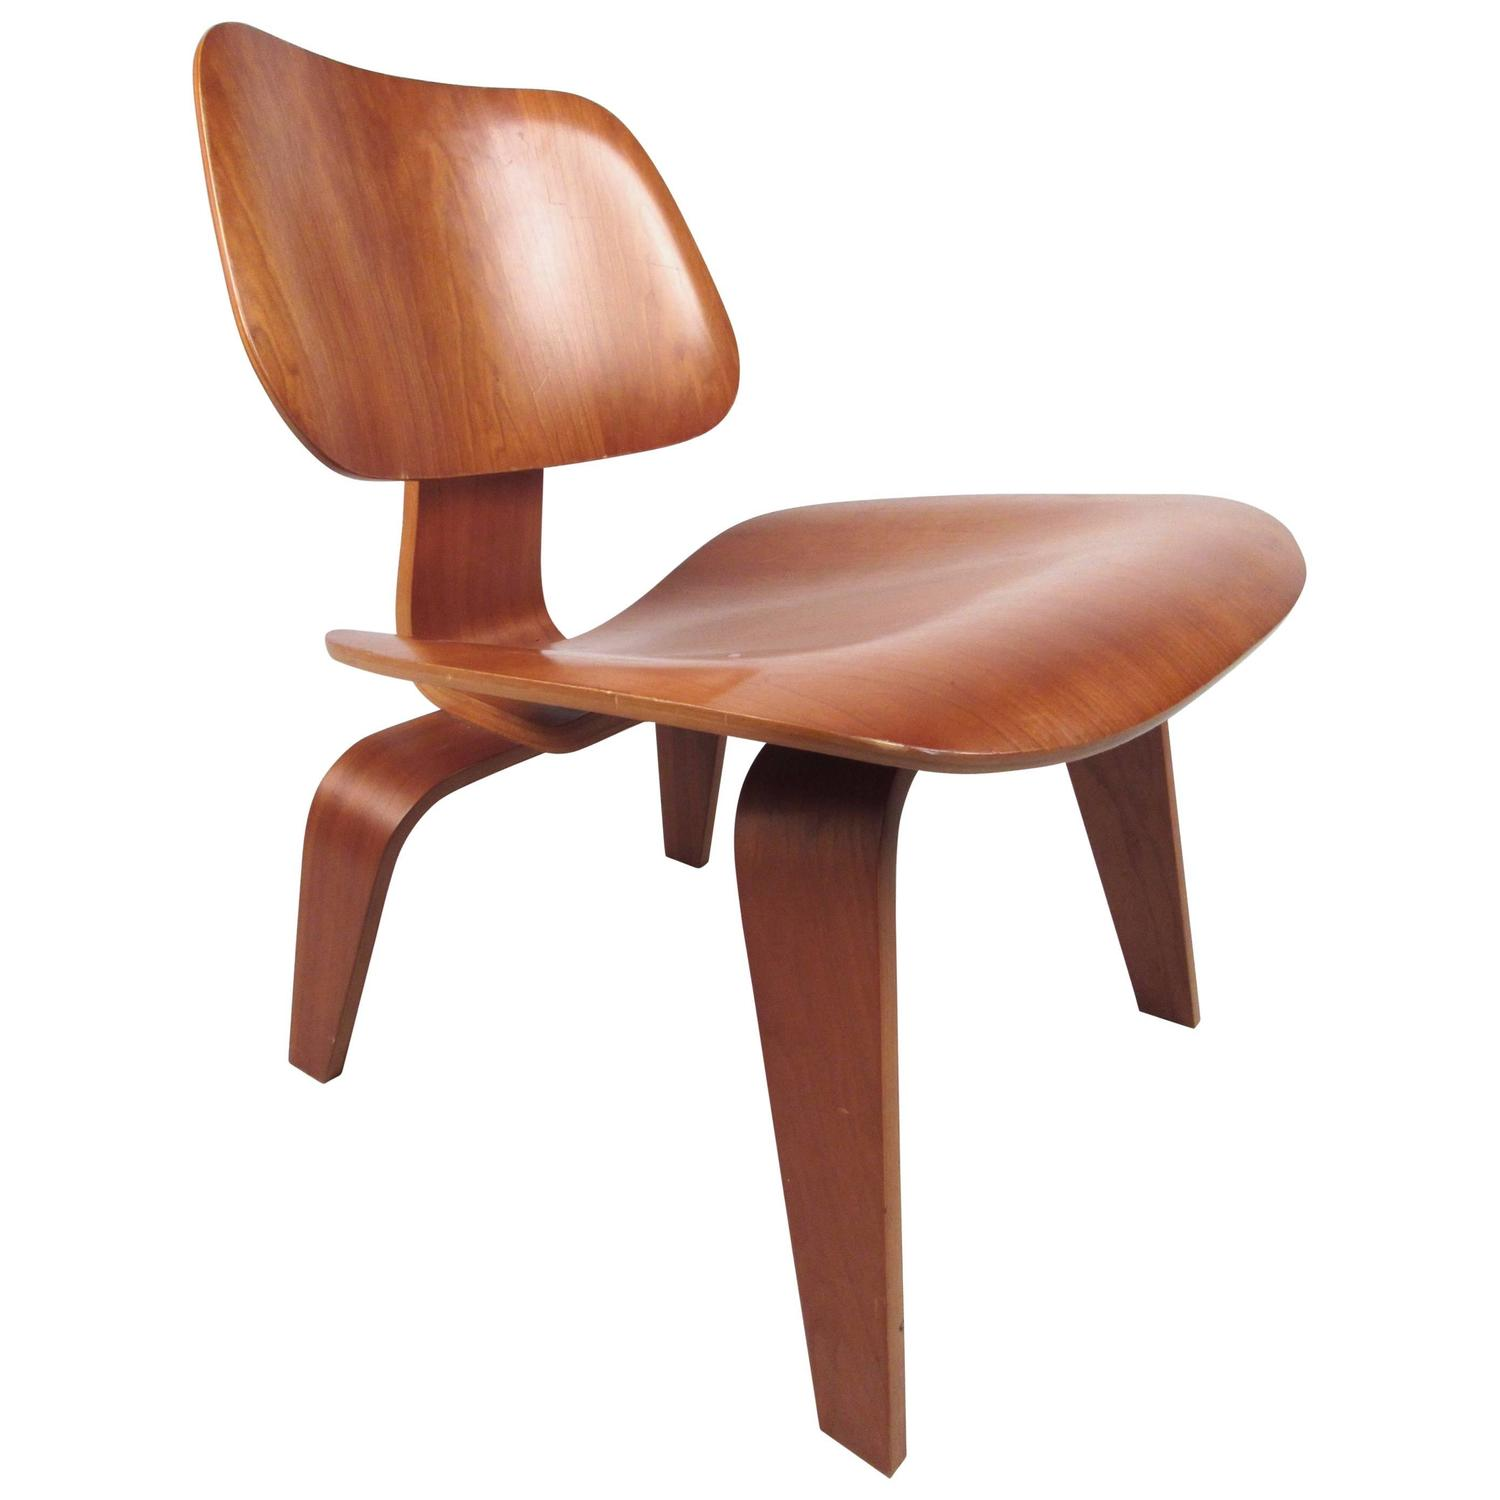 Charles Eames Charles Eames Plywood Dcw Side Chair For Herman Miller